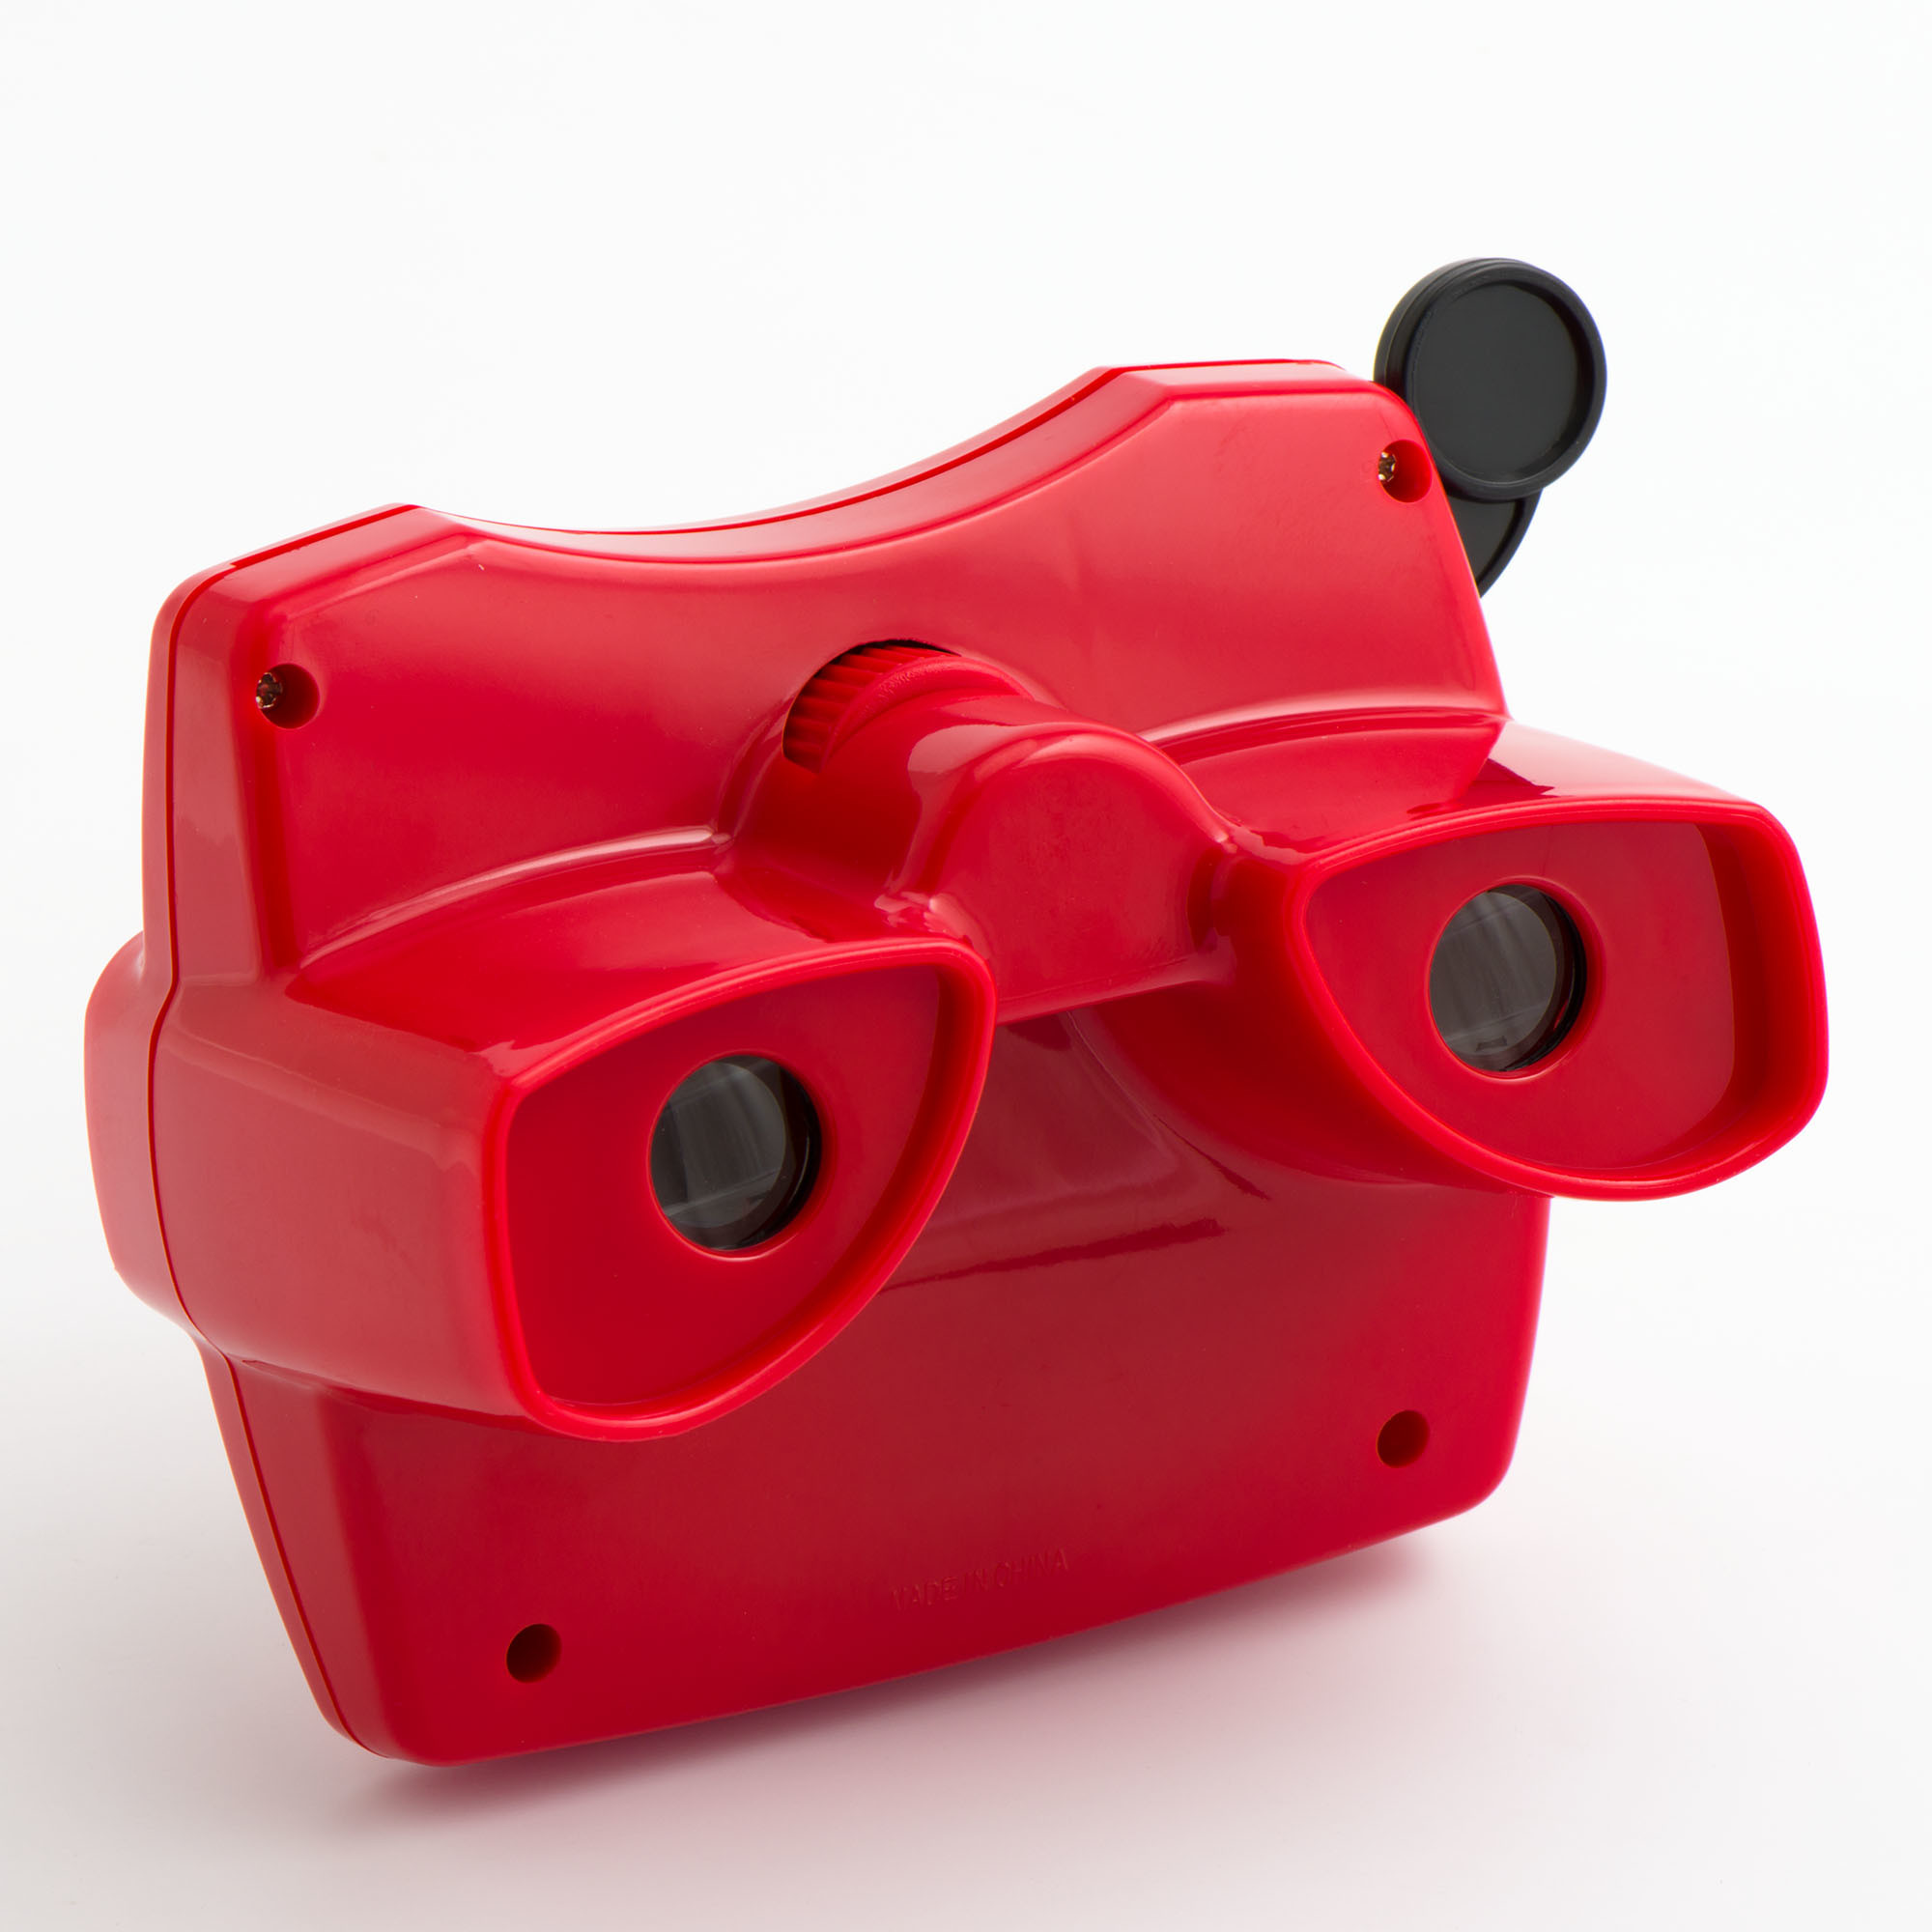 Retro View-Master reel viewer